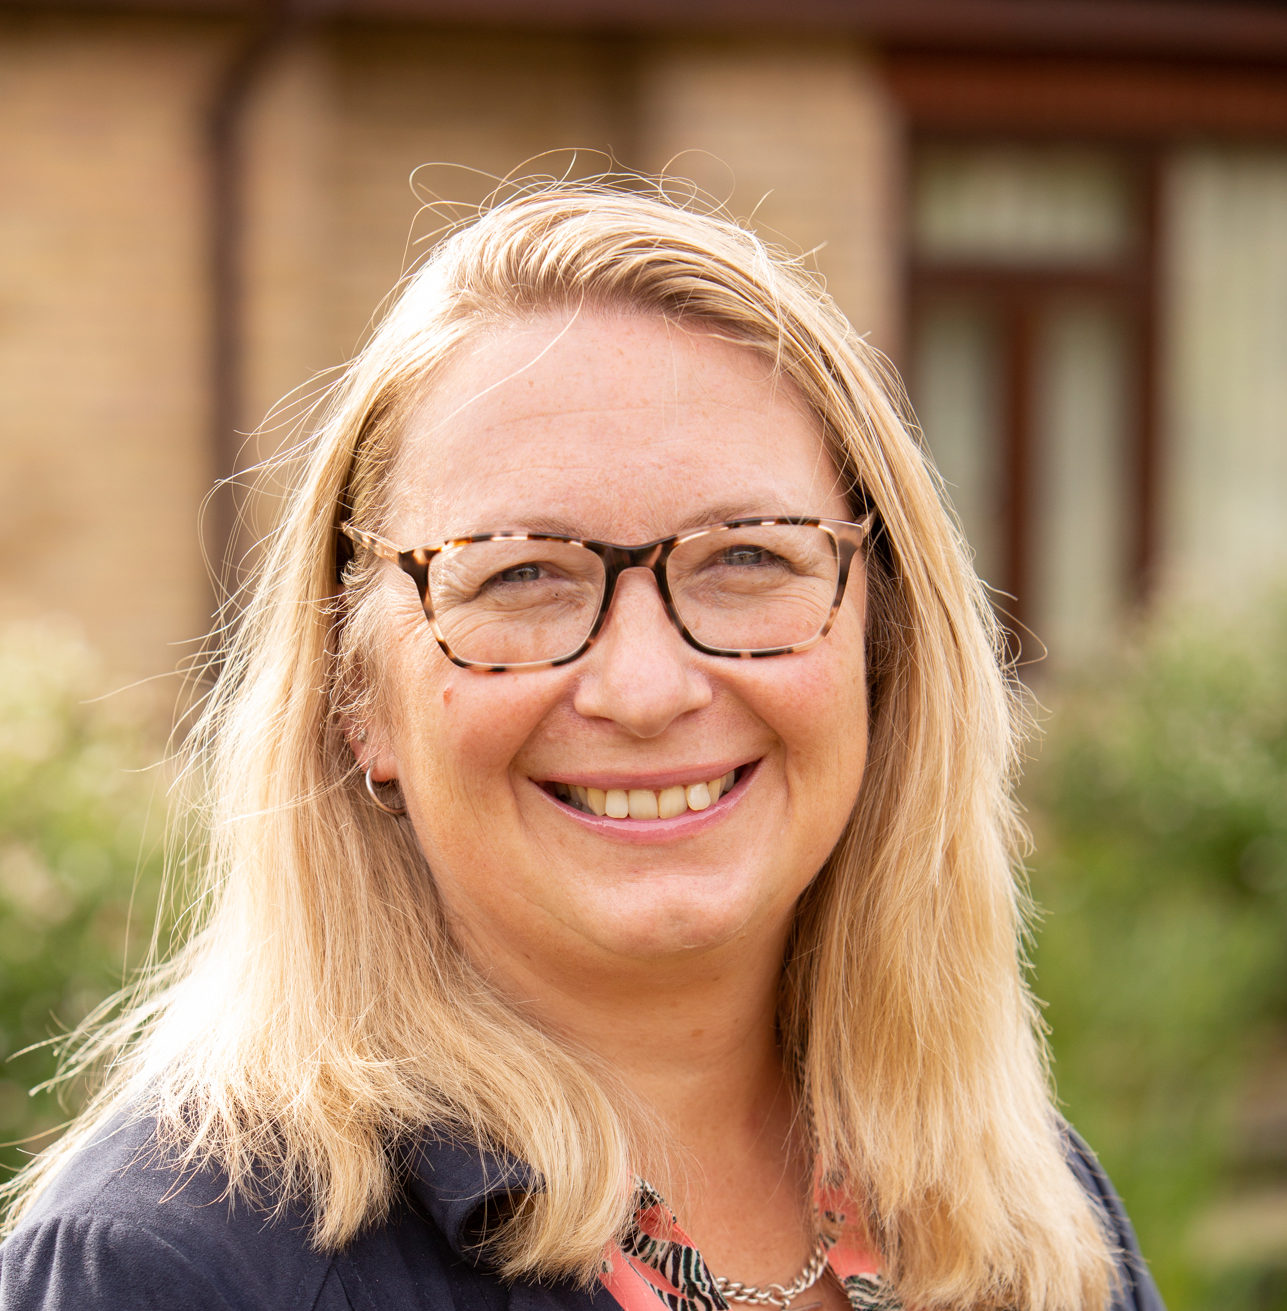 St Elizabeth Hospice announces new Chief Executive Officer